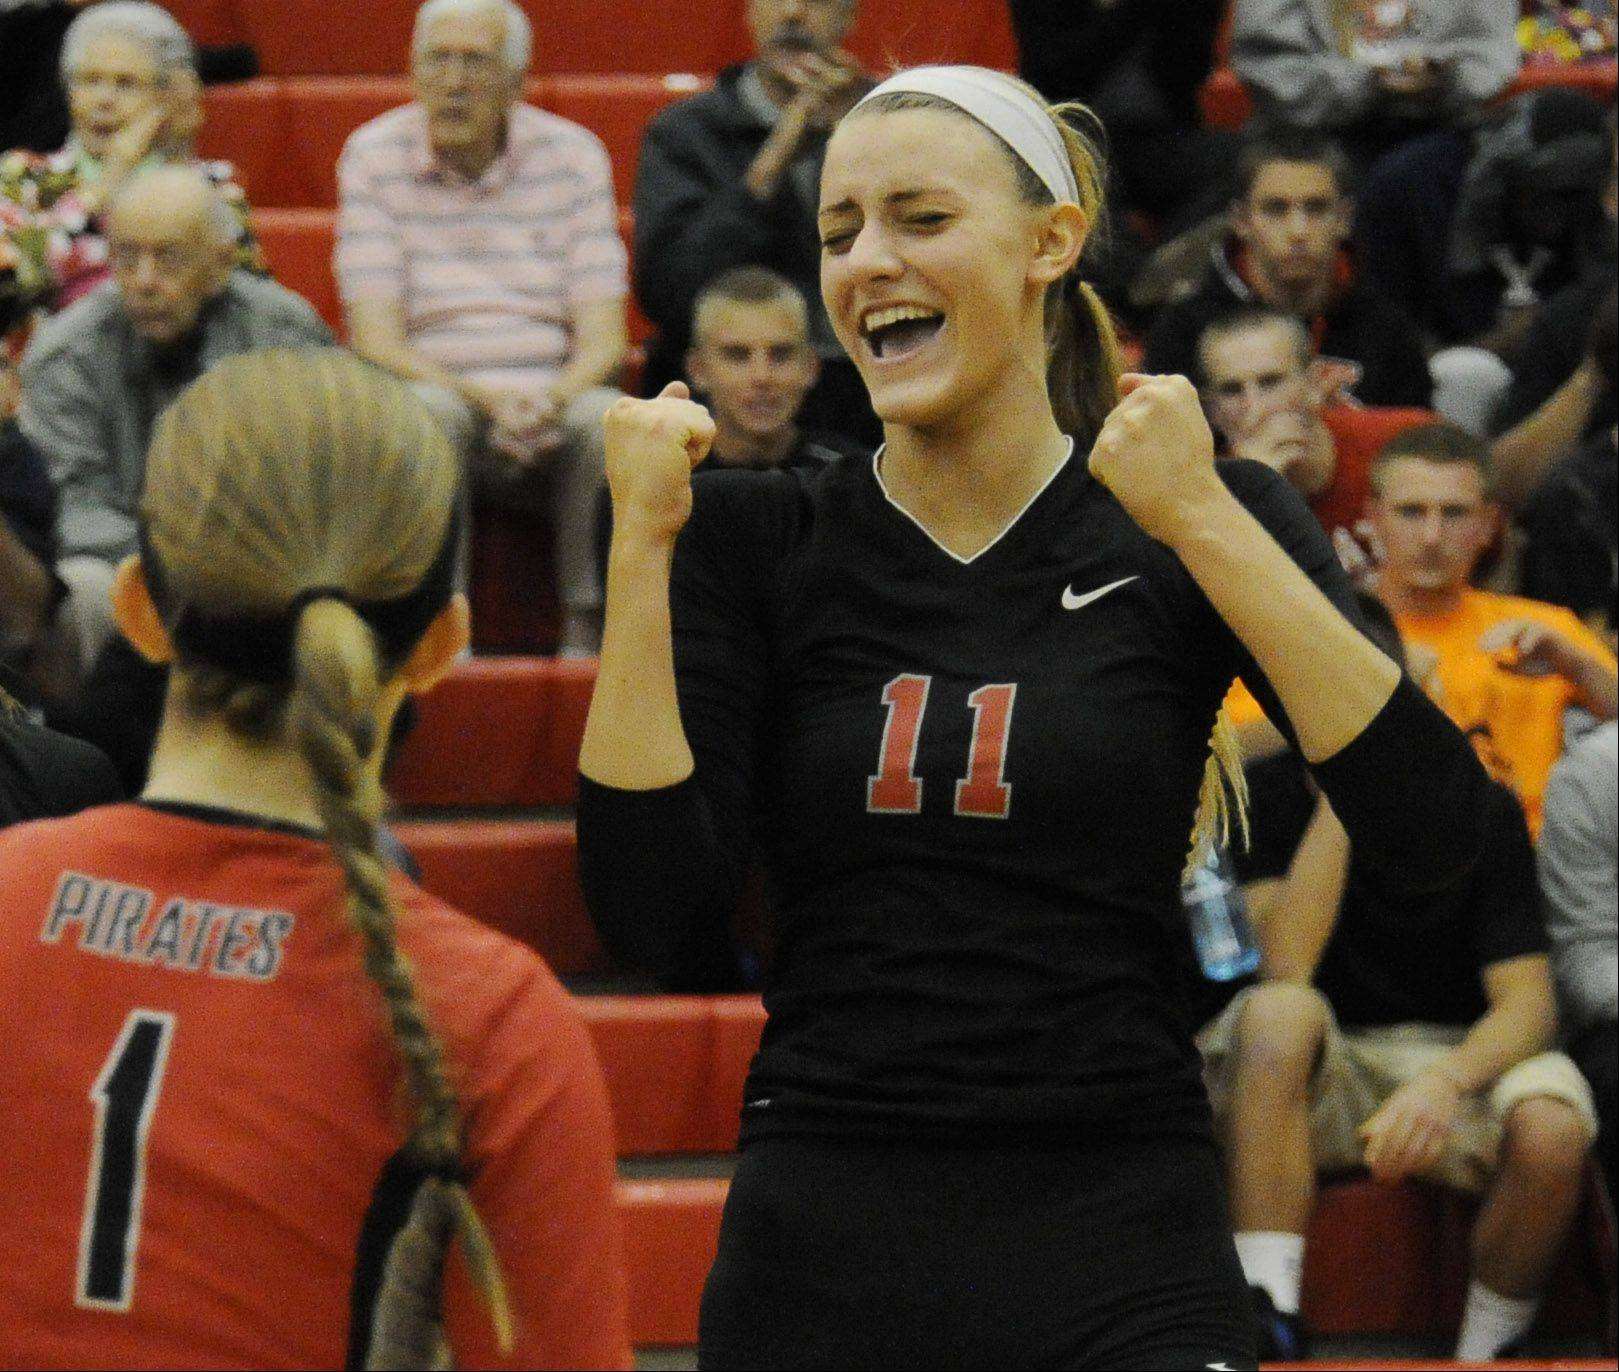 Palatine's Taylor Fricano and Casey Dolen celebrate a victory in set one over Fremd on Thursday at Palatine.